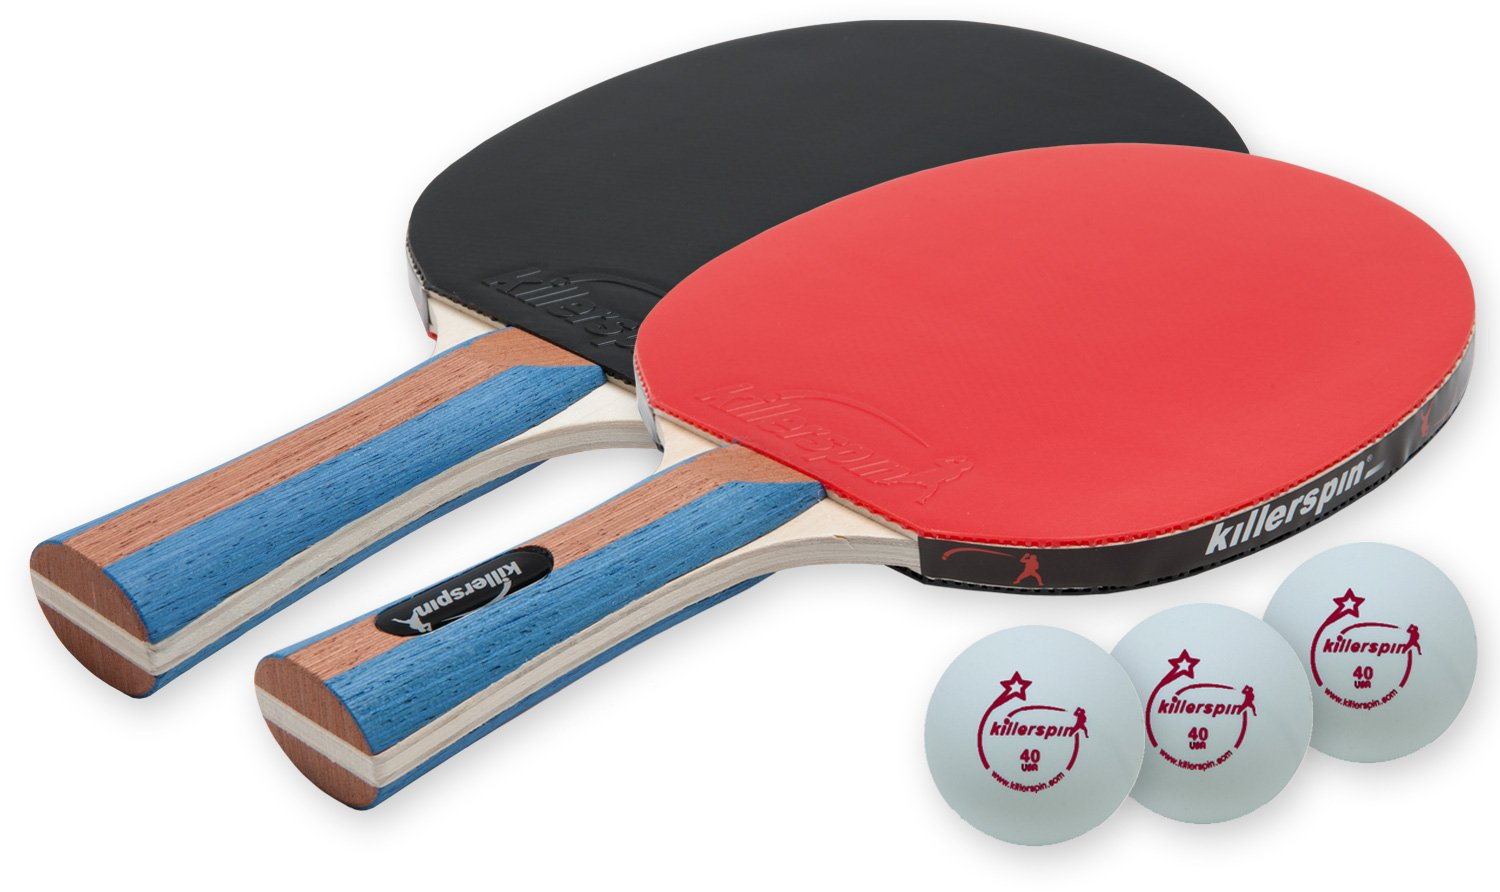 Killerspin JETSET 2 Premium Set - Table Tennis Set with 2 Ping Pong Paddles With Premium Rubbers and 3 Ping Pong Balls